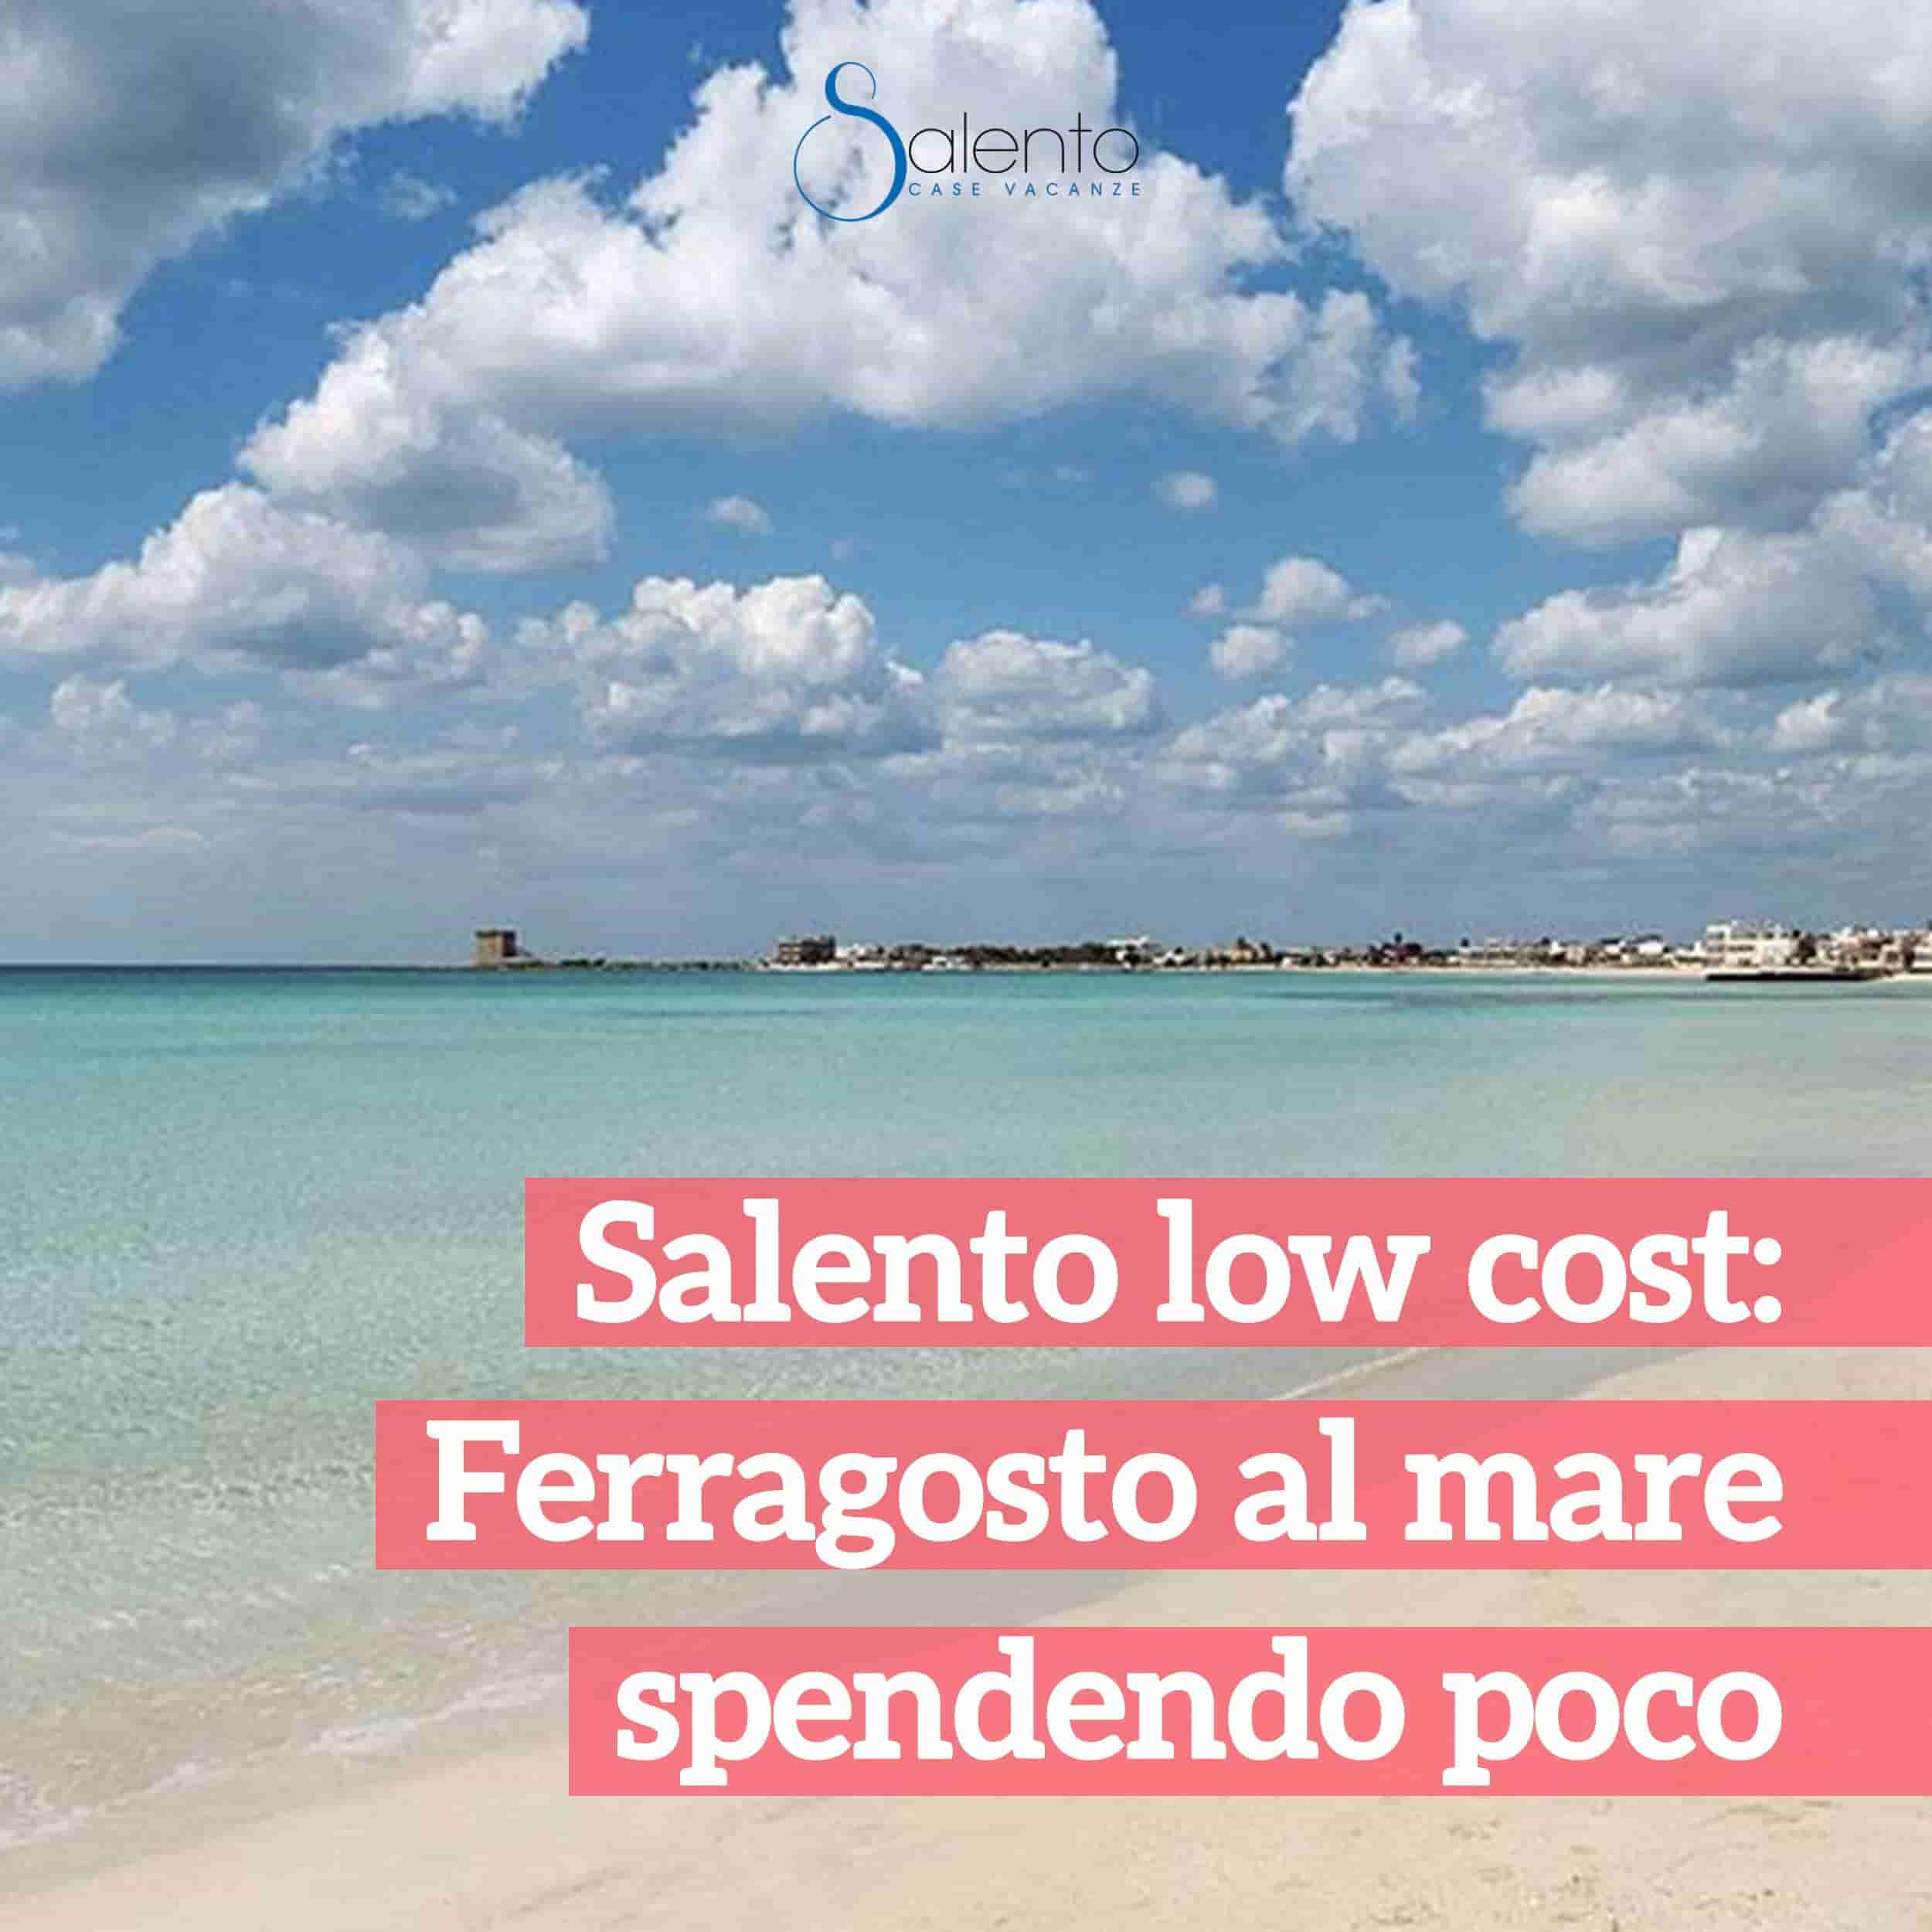 Salento low cost: August by the sea, spending little